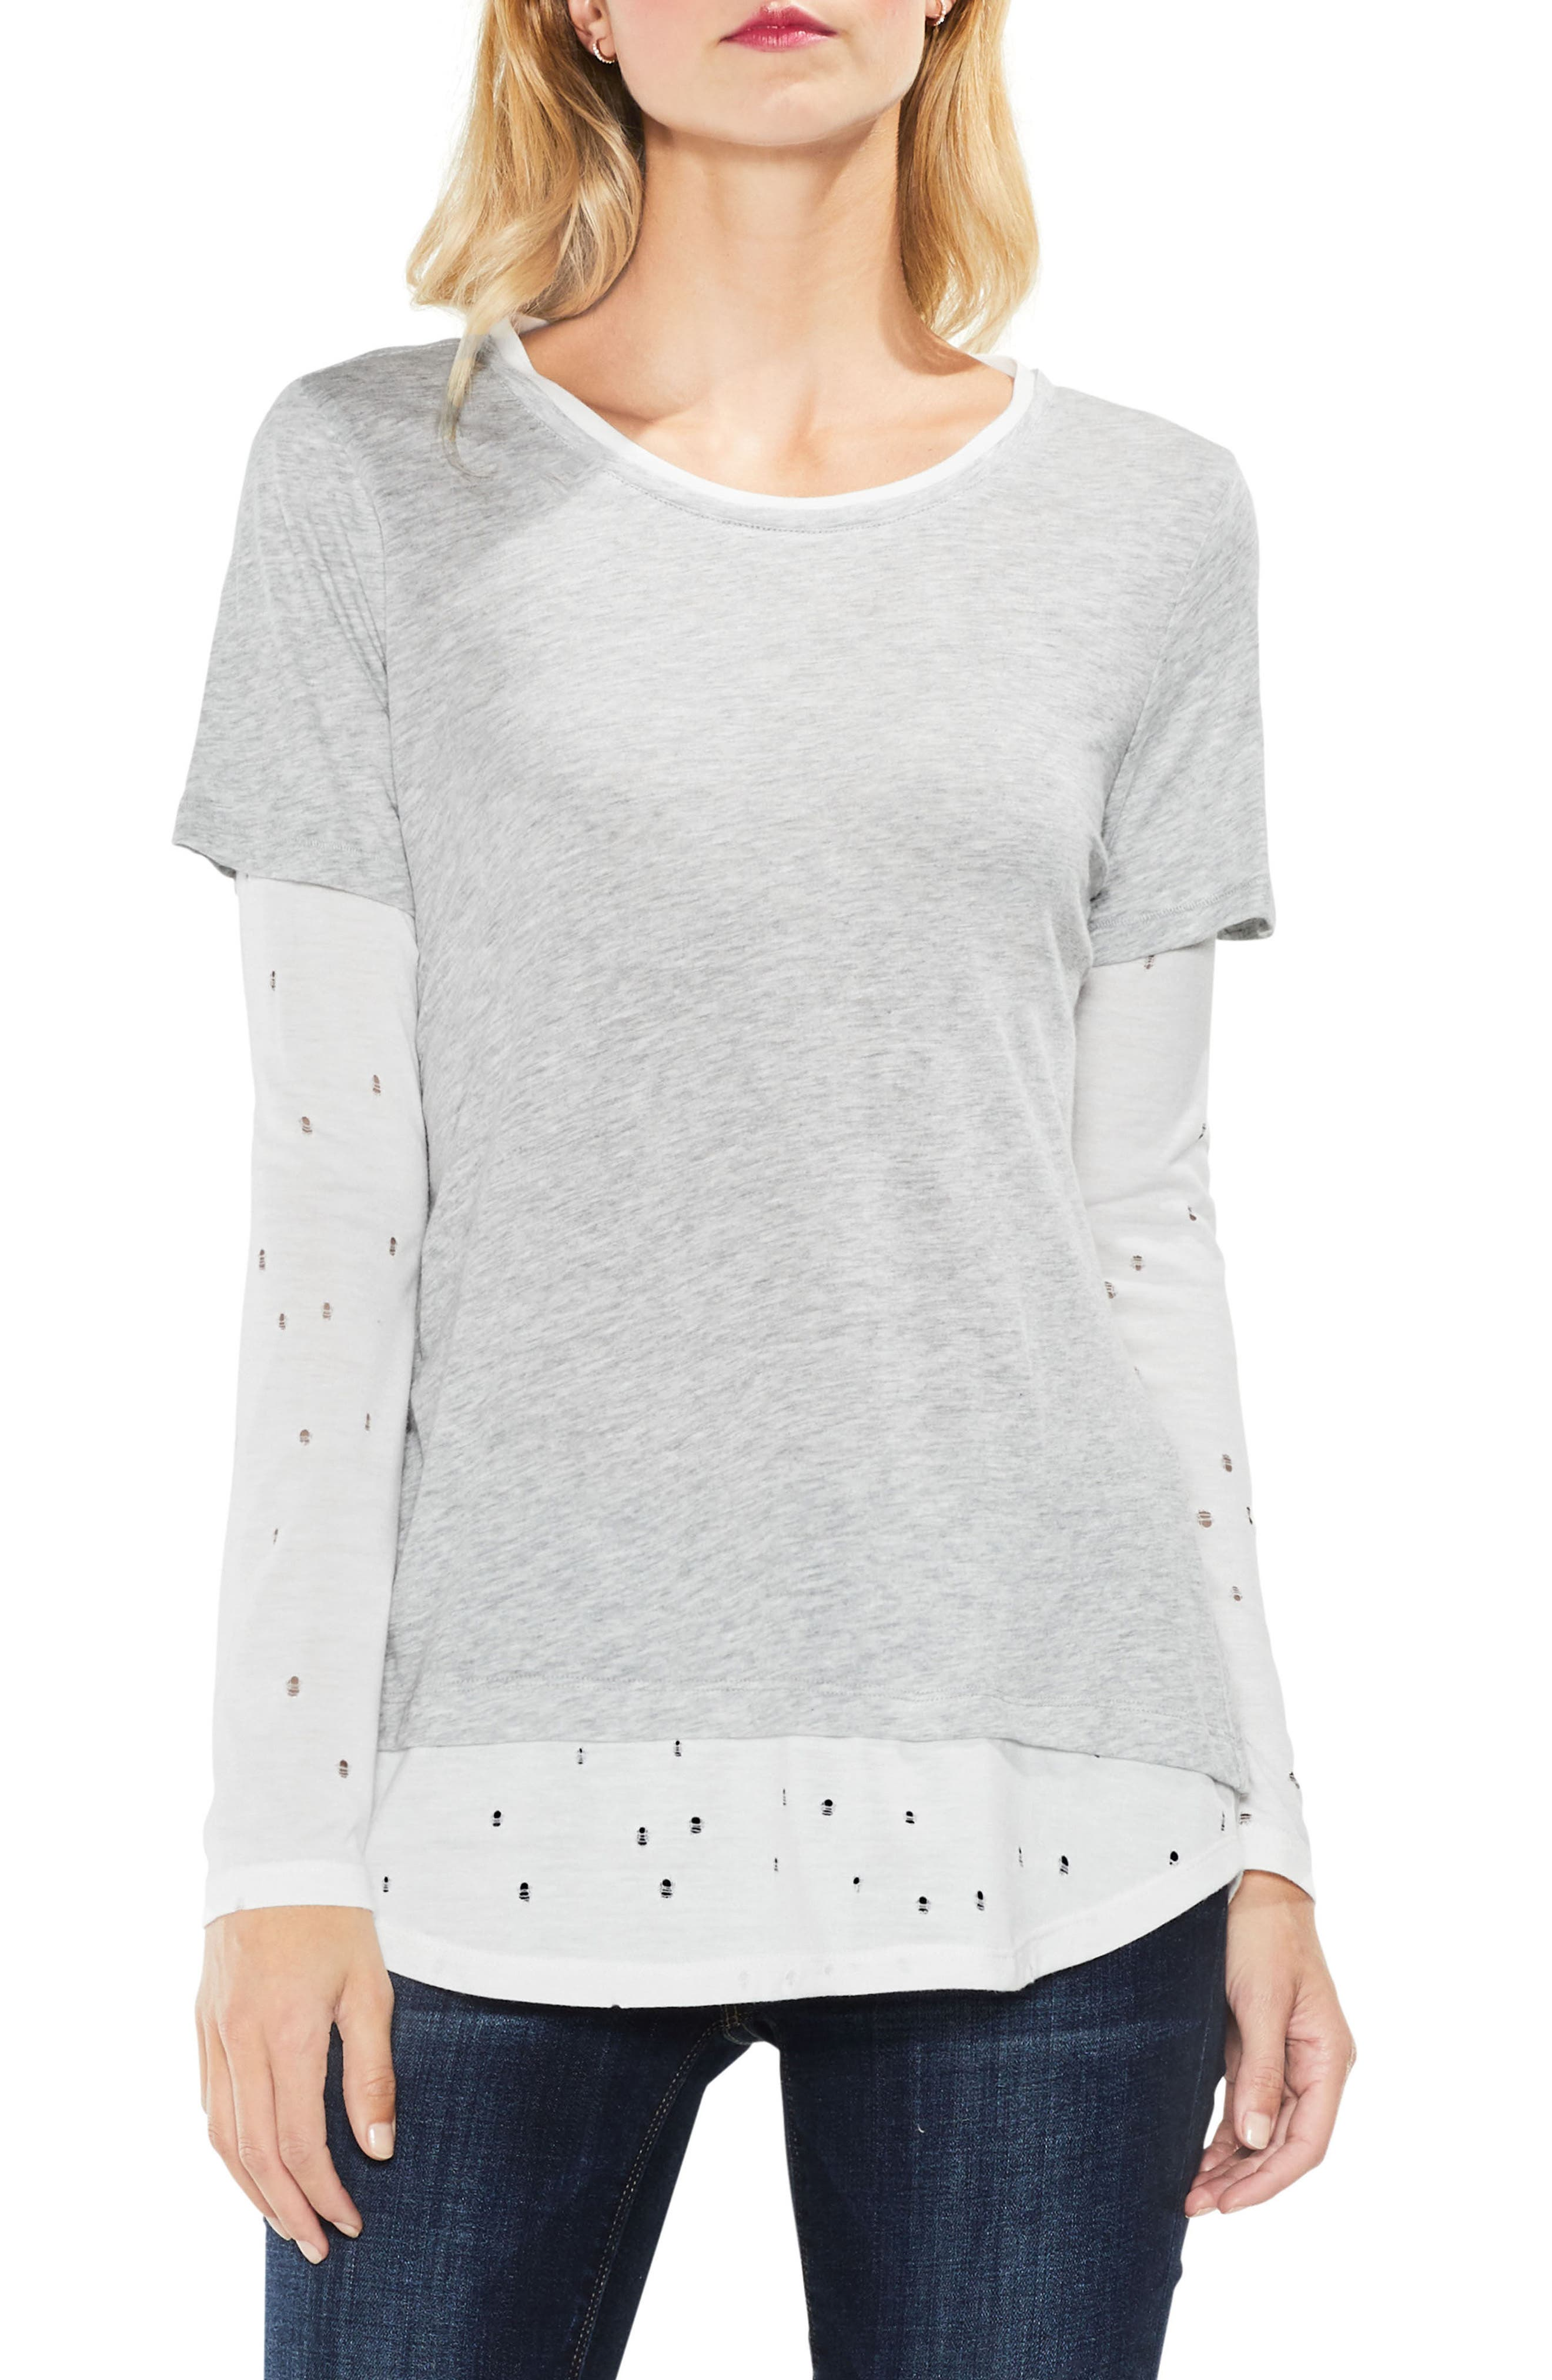 Main Image - Two by Vince Camuto Distressed Mix Media Top